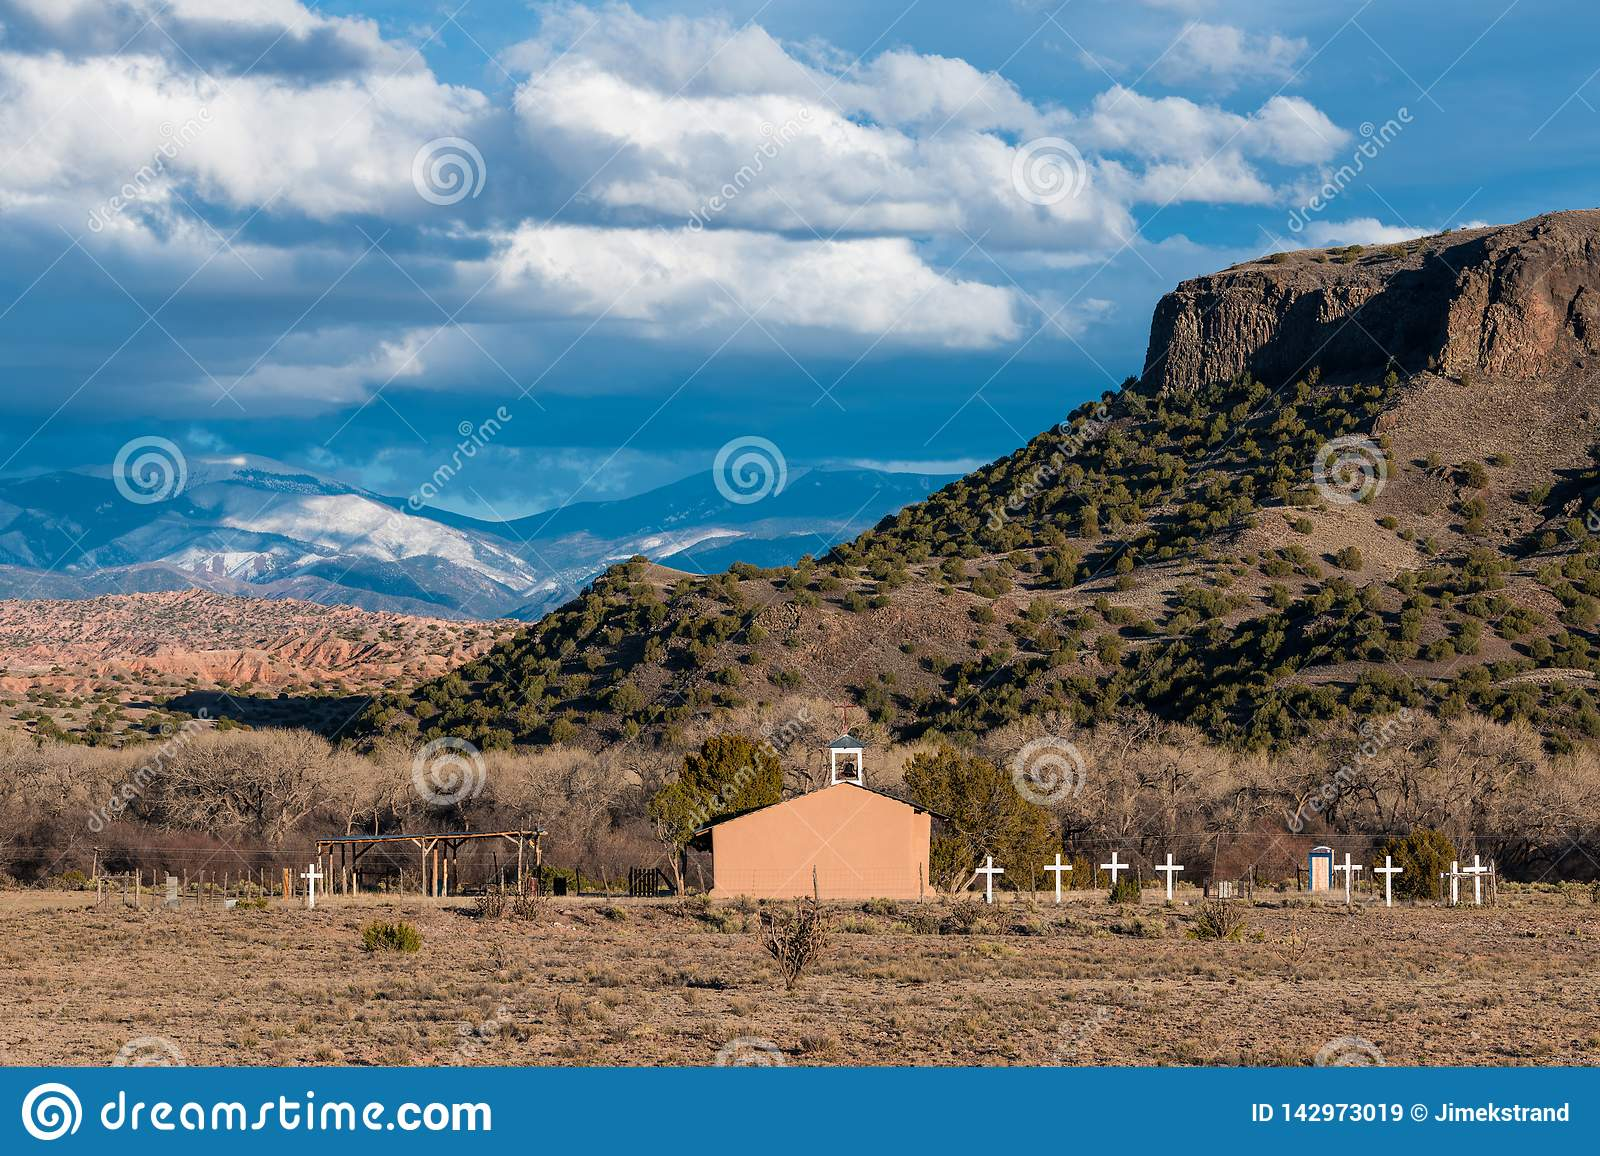 An old Spanish mission style church with a row of white crosses in a southwestern landscape of mesas, badlands, and mountains